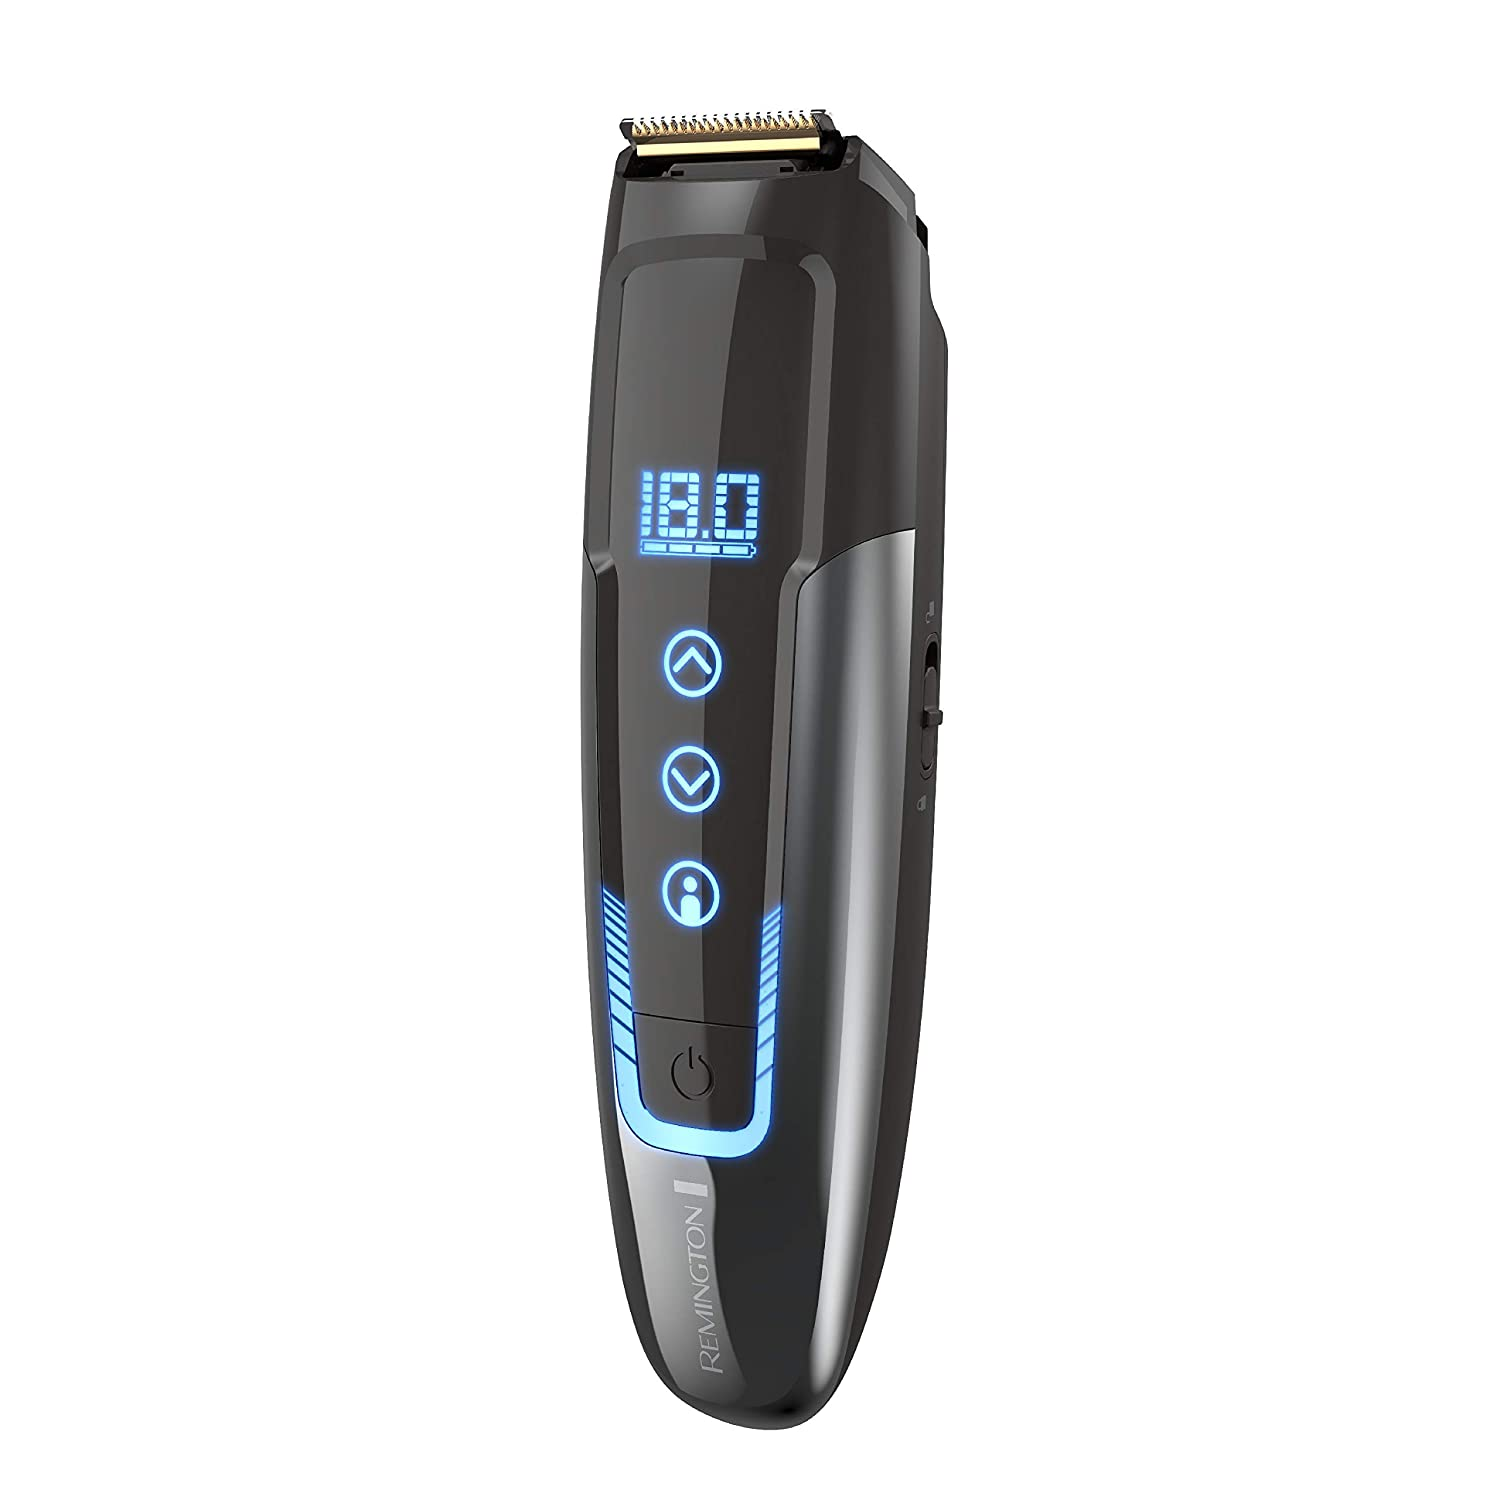 Remington MB4700 Smart Beard Trimmer with Memory Settings and Digital Touch Screen, Rechargeable for Cordless Use